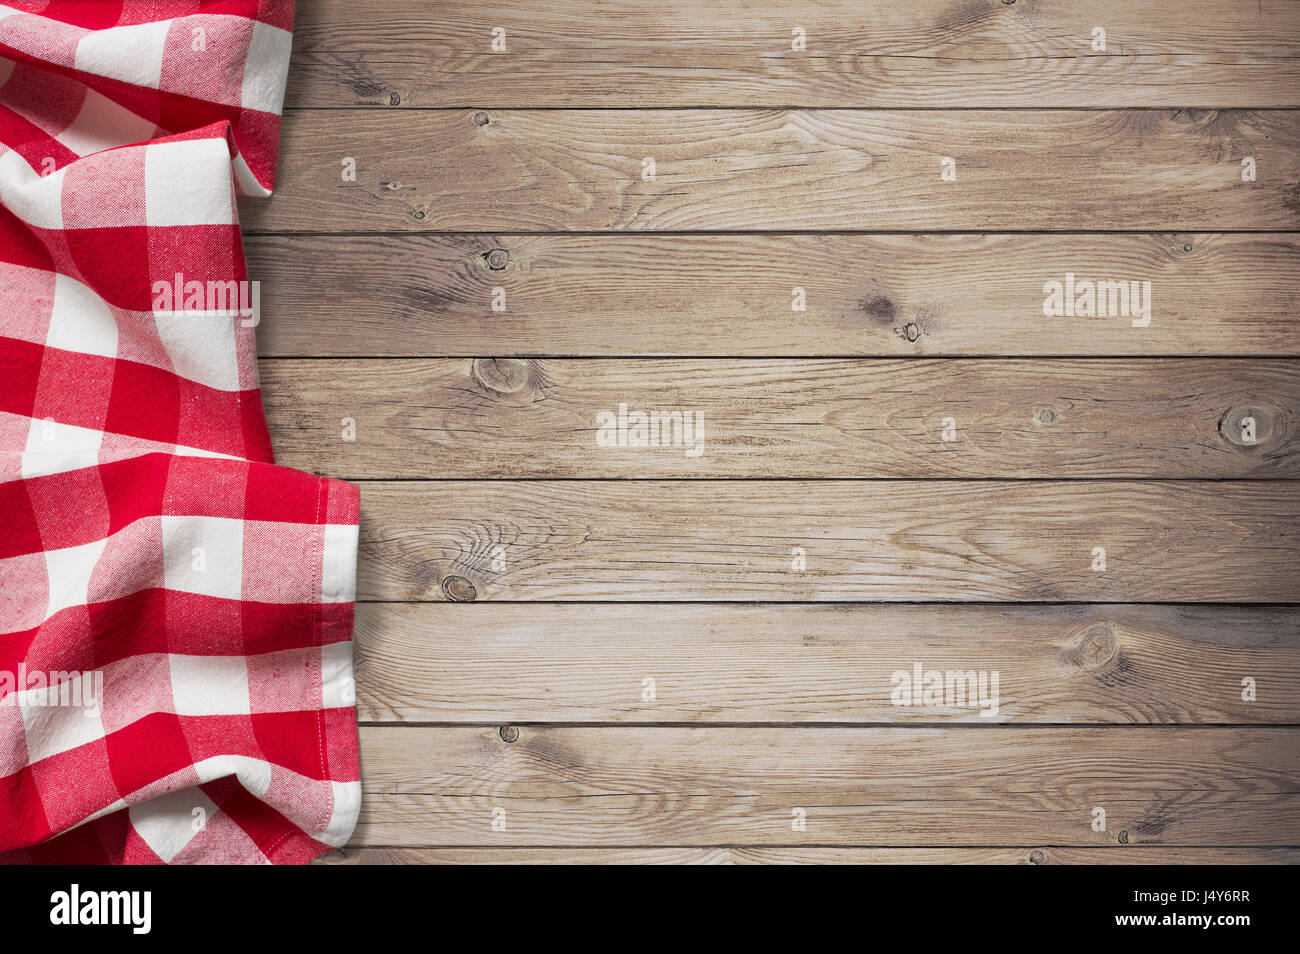 red picnic tablecloth on wood table background Stock Photo